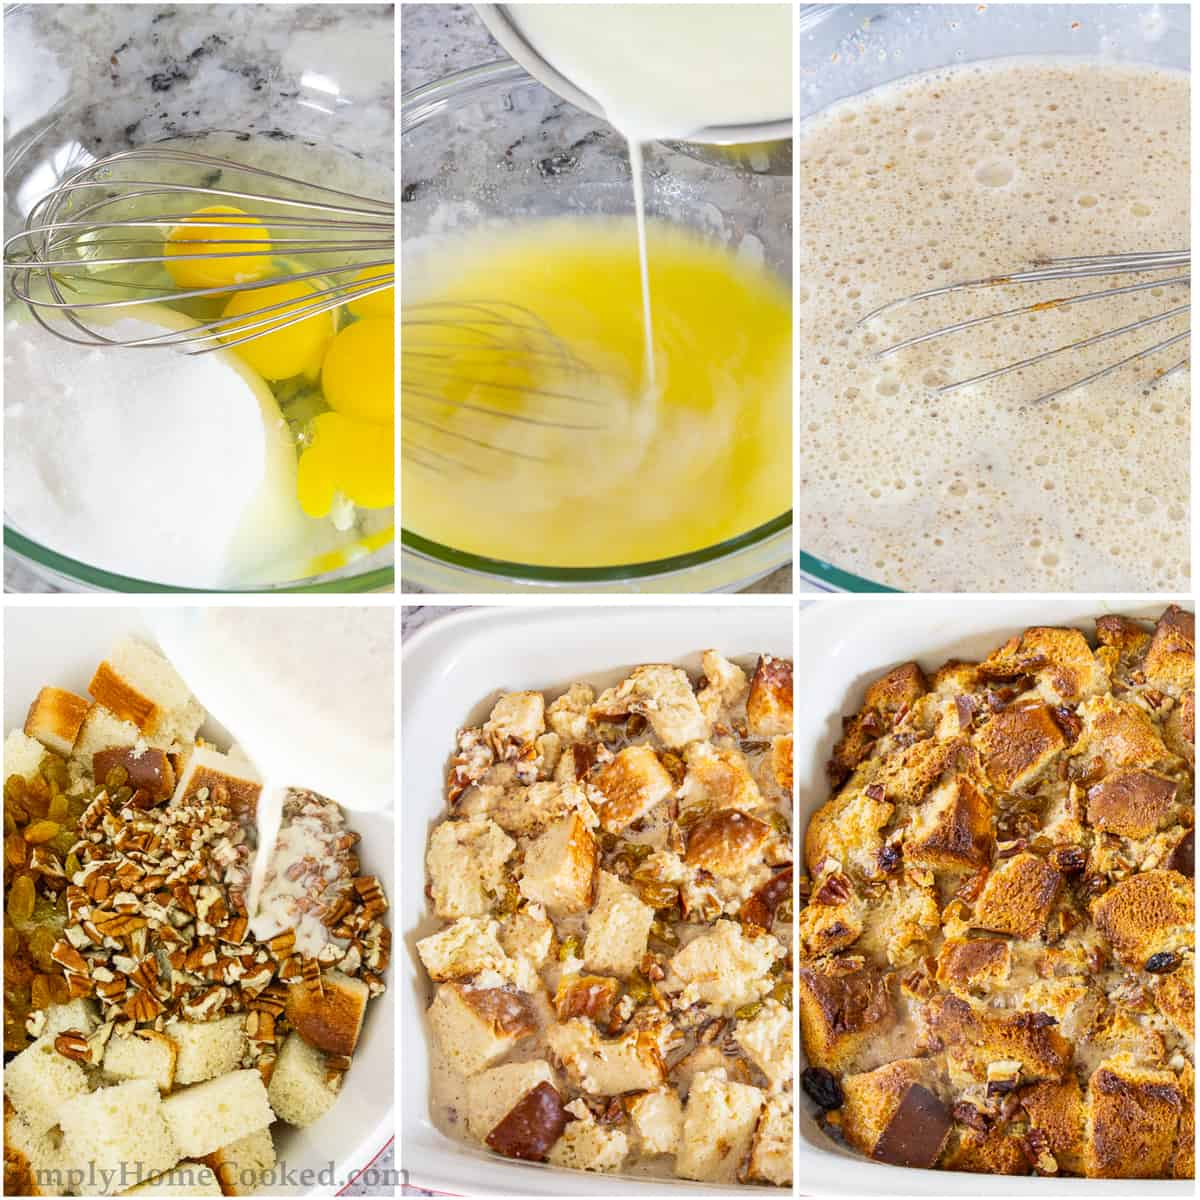 steps to make bread pudding with vanilla rum sauce